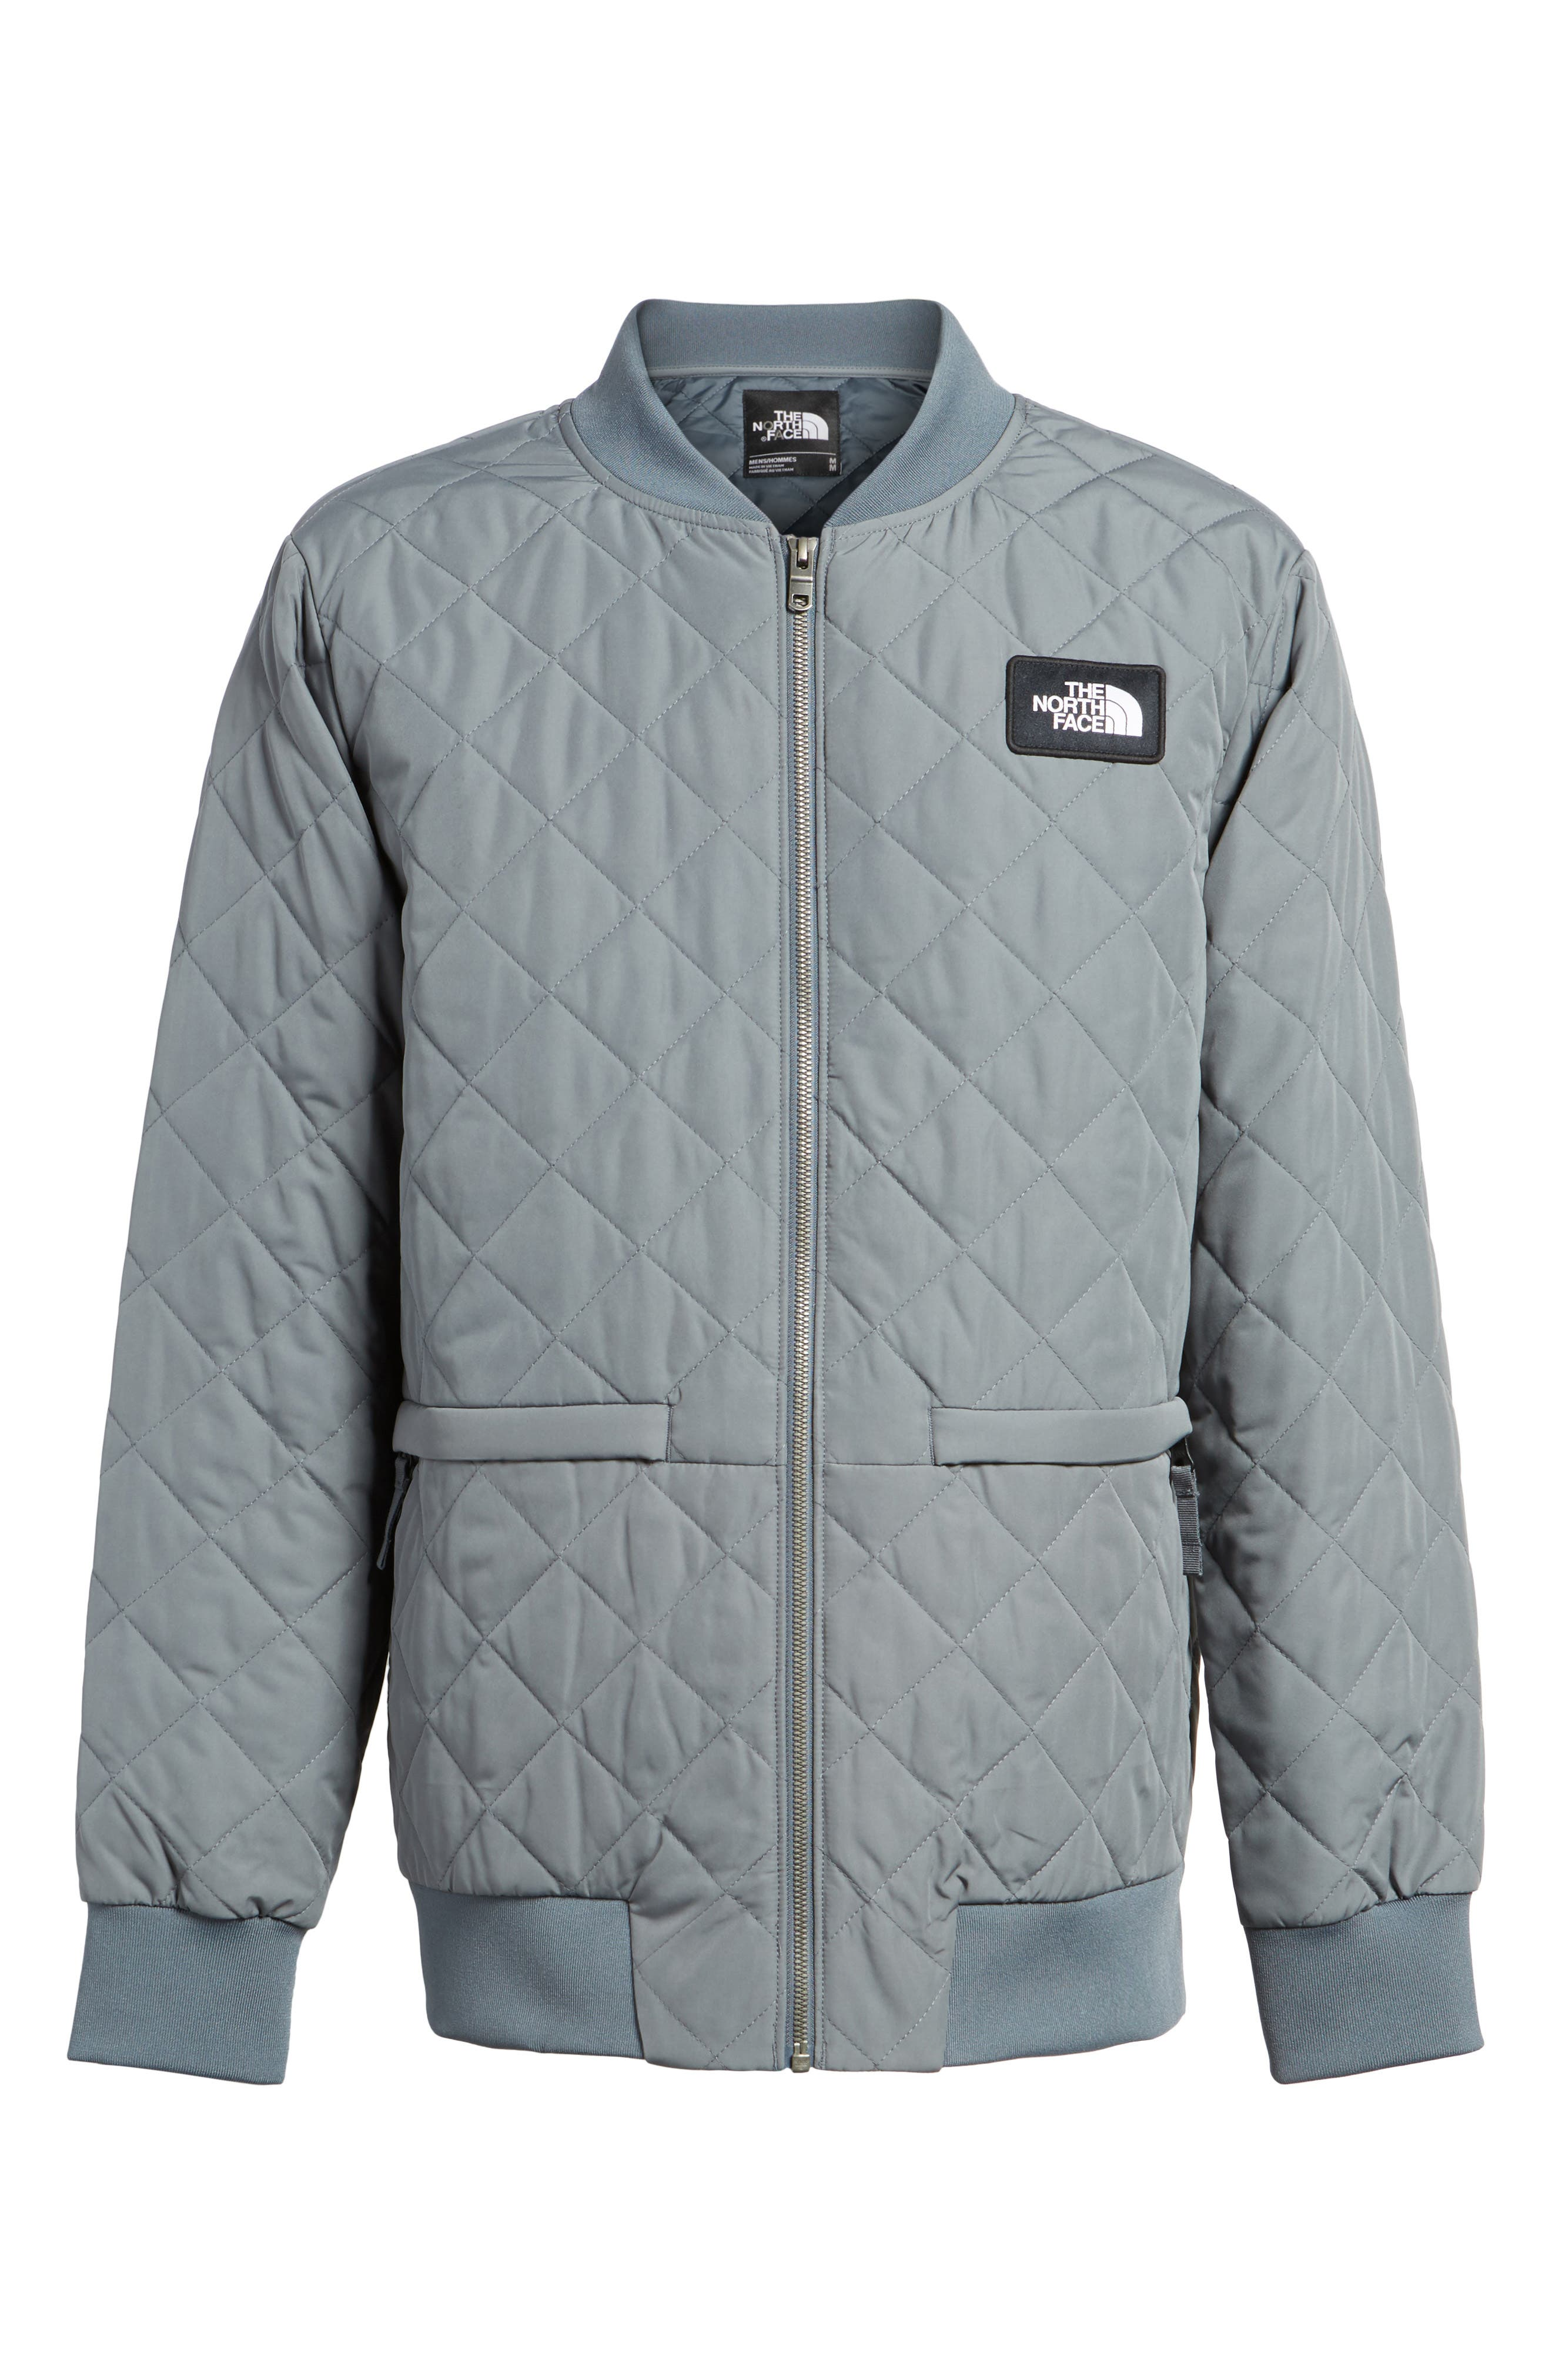 Distributor Quilted Bomber Jacket,                             Alternate thumbnail 6, color,                             Grey